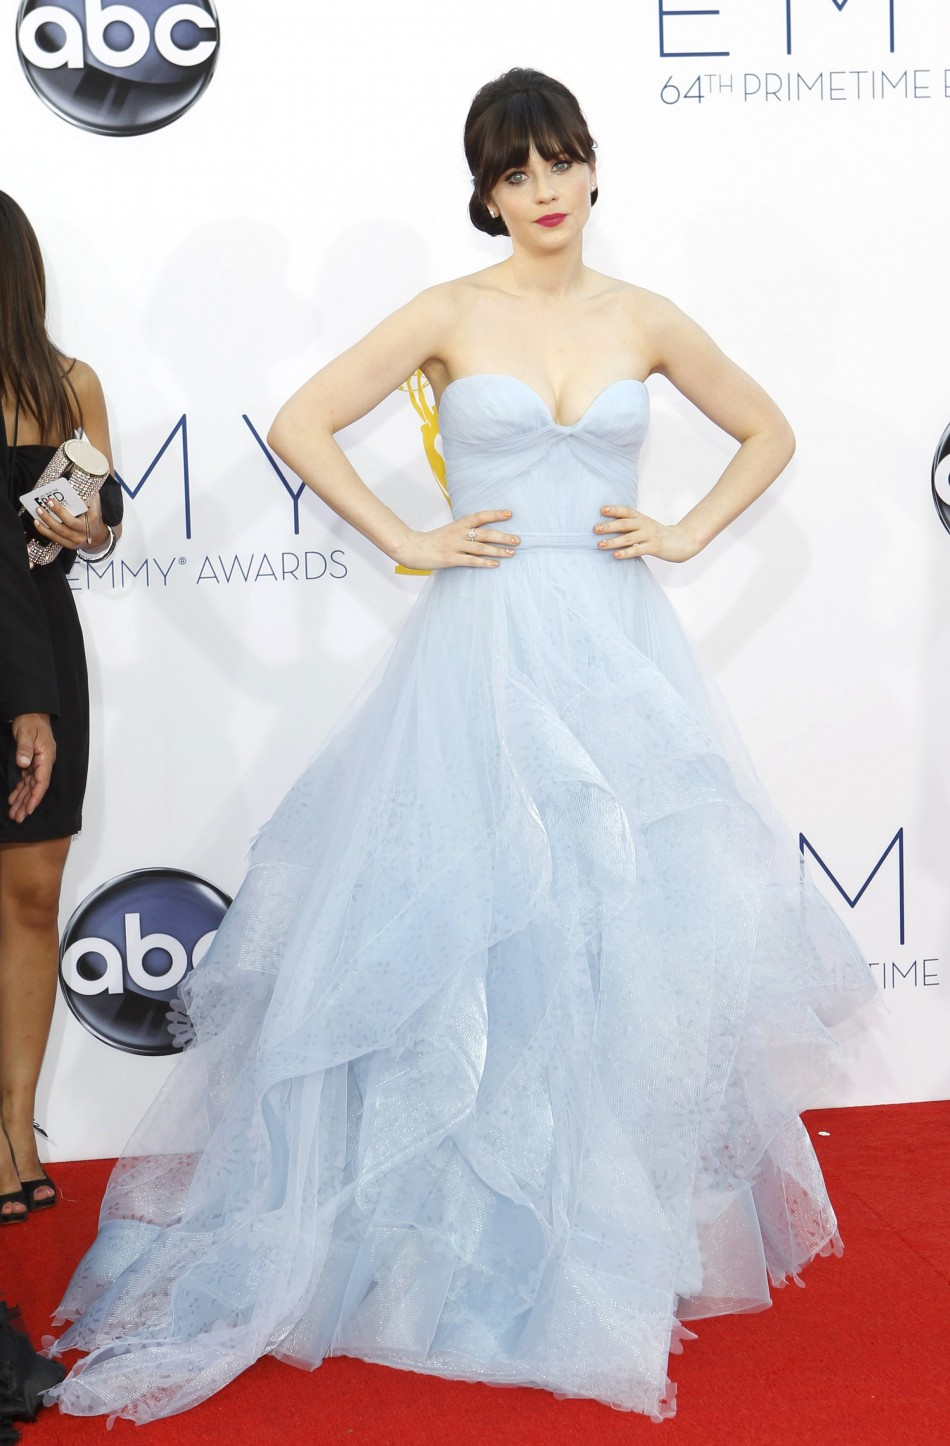 Actress Zooey Deschanel of the comedy series The New Girl arrives at the 64th Primetime Emmy Awards in Los Angeles